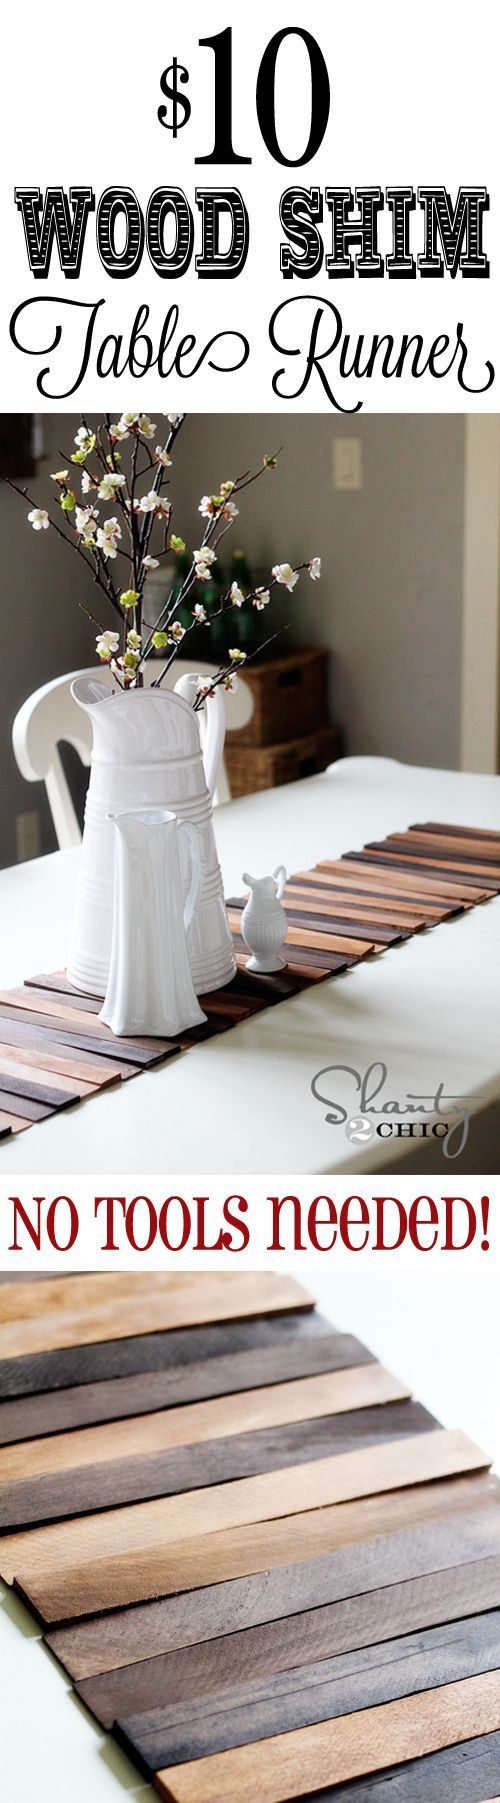 Best 25+ Cleaning wood tables ideas on Pinterest | Restoring ...